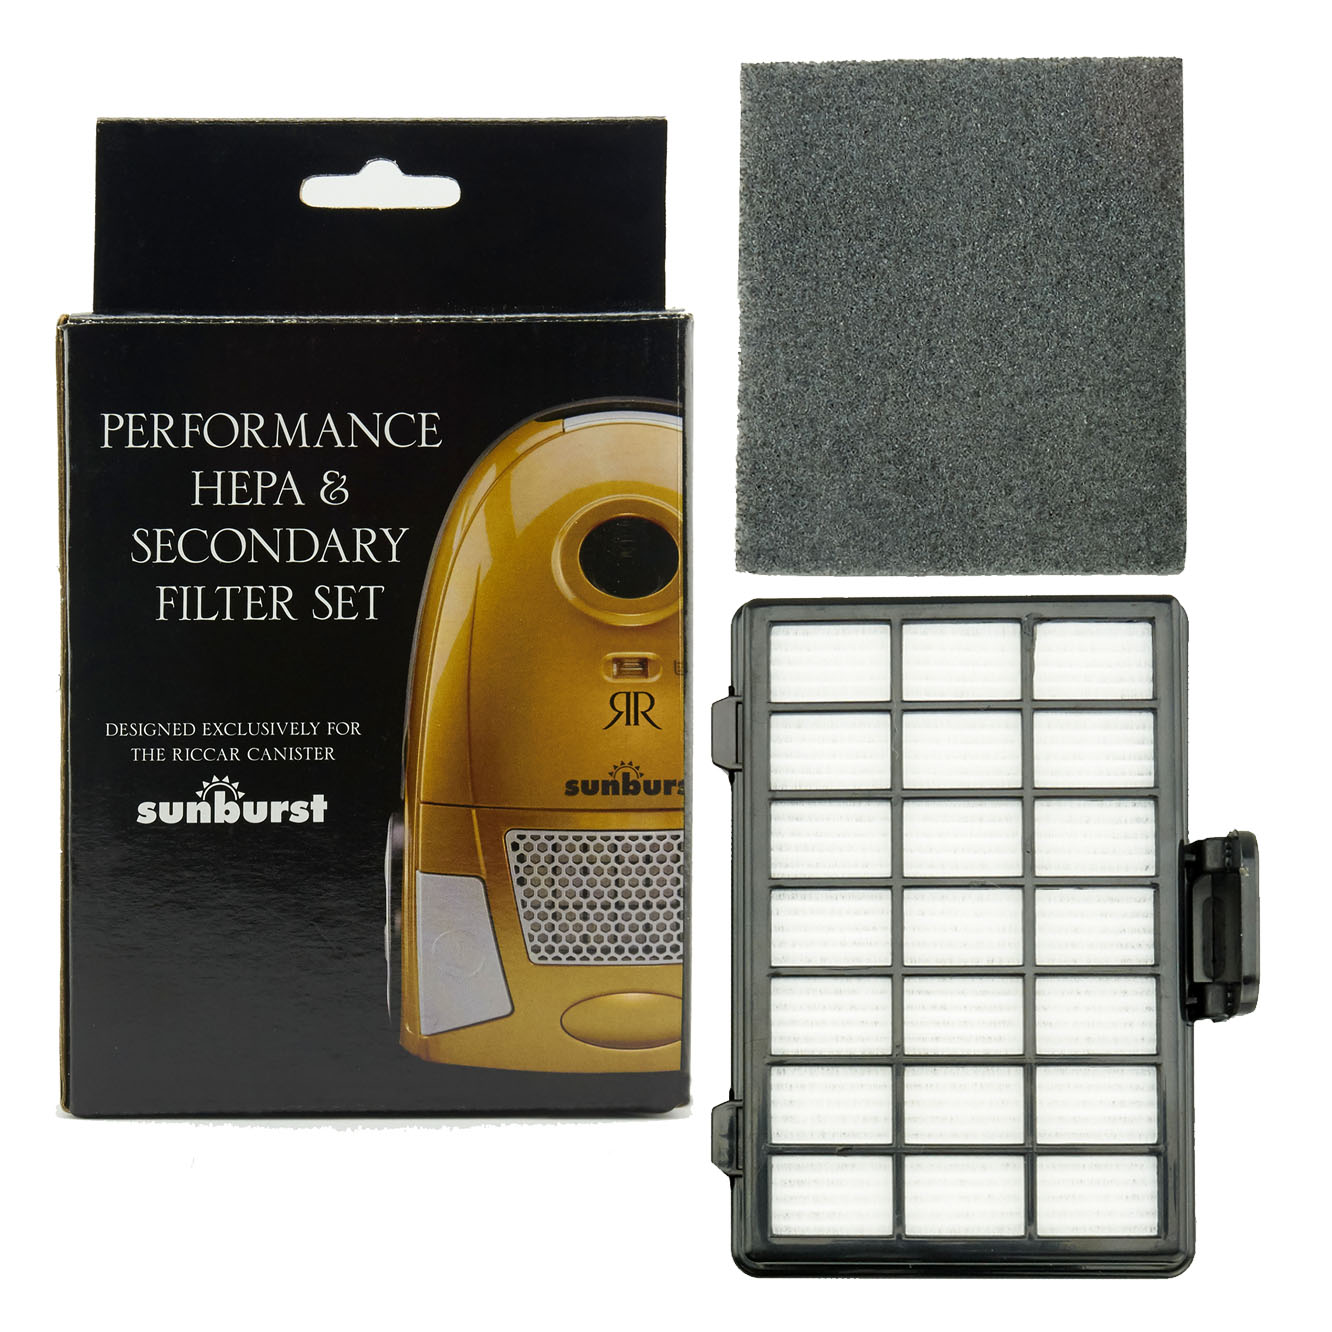 Riccar SUN.1 SUN.3 Performance Hepa & Secondary Filter Set